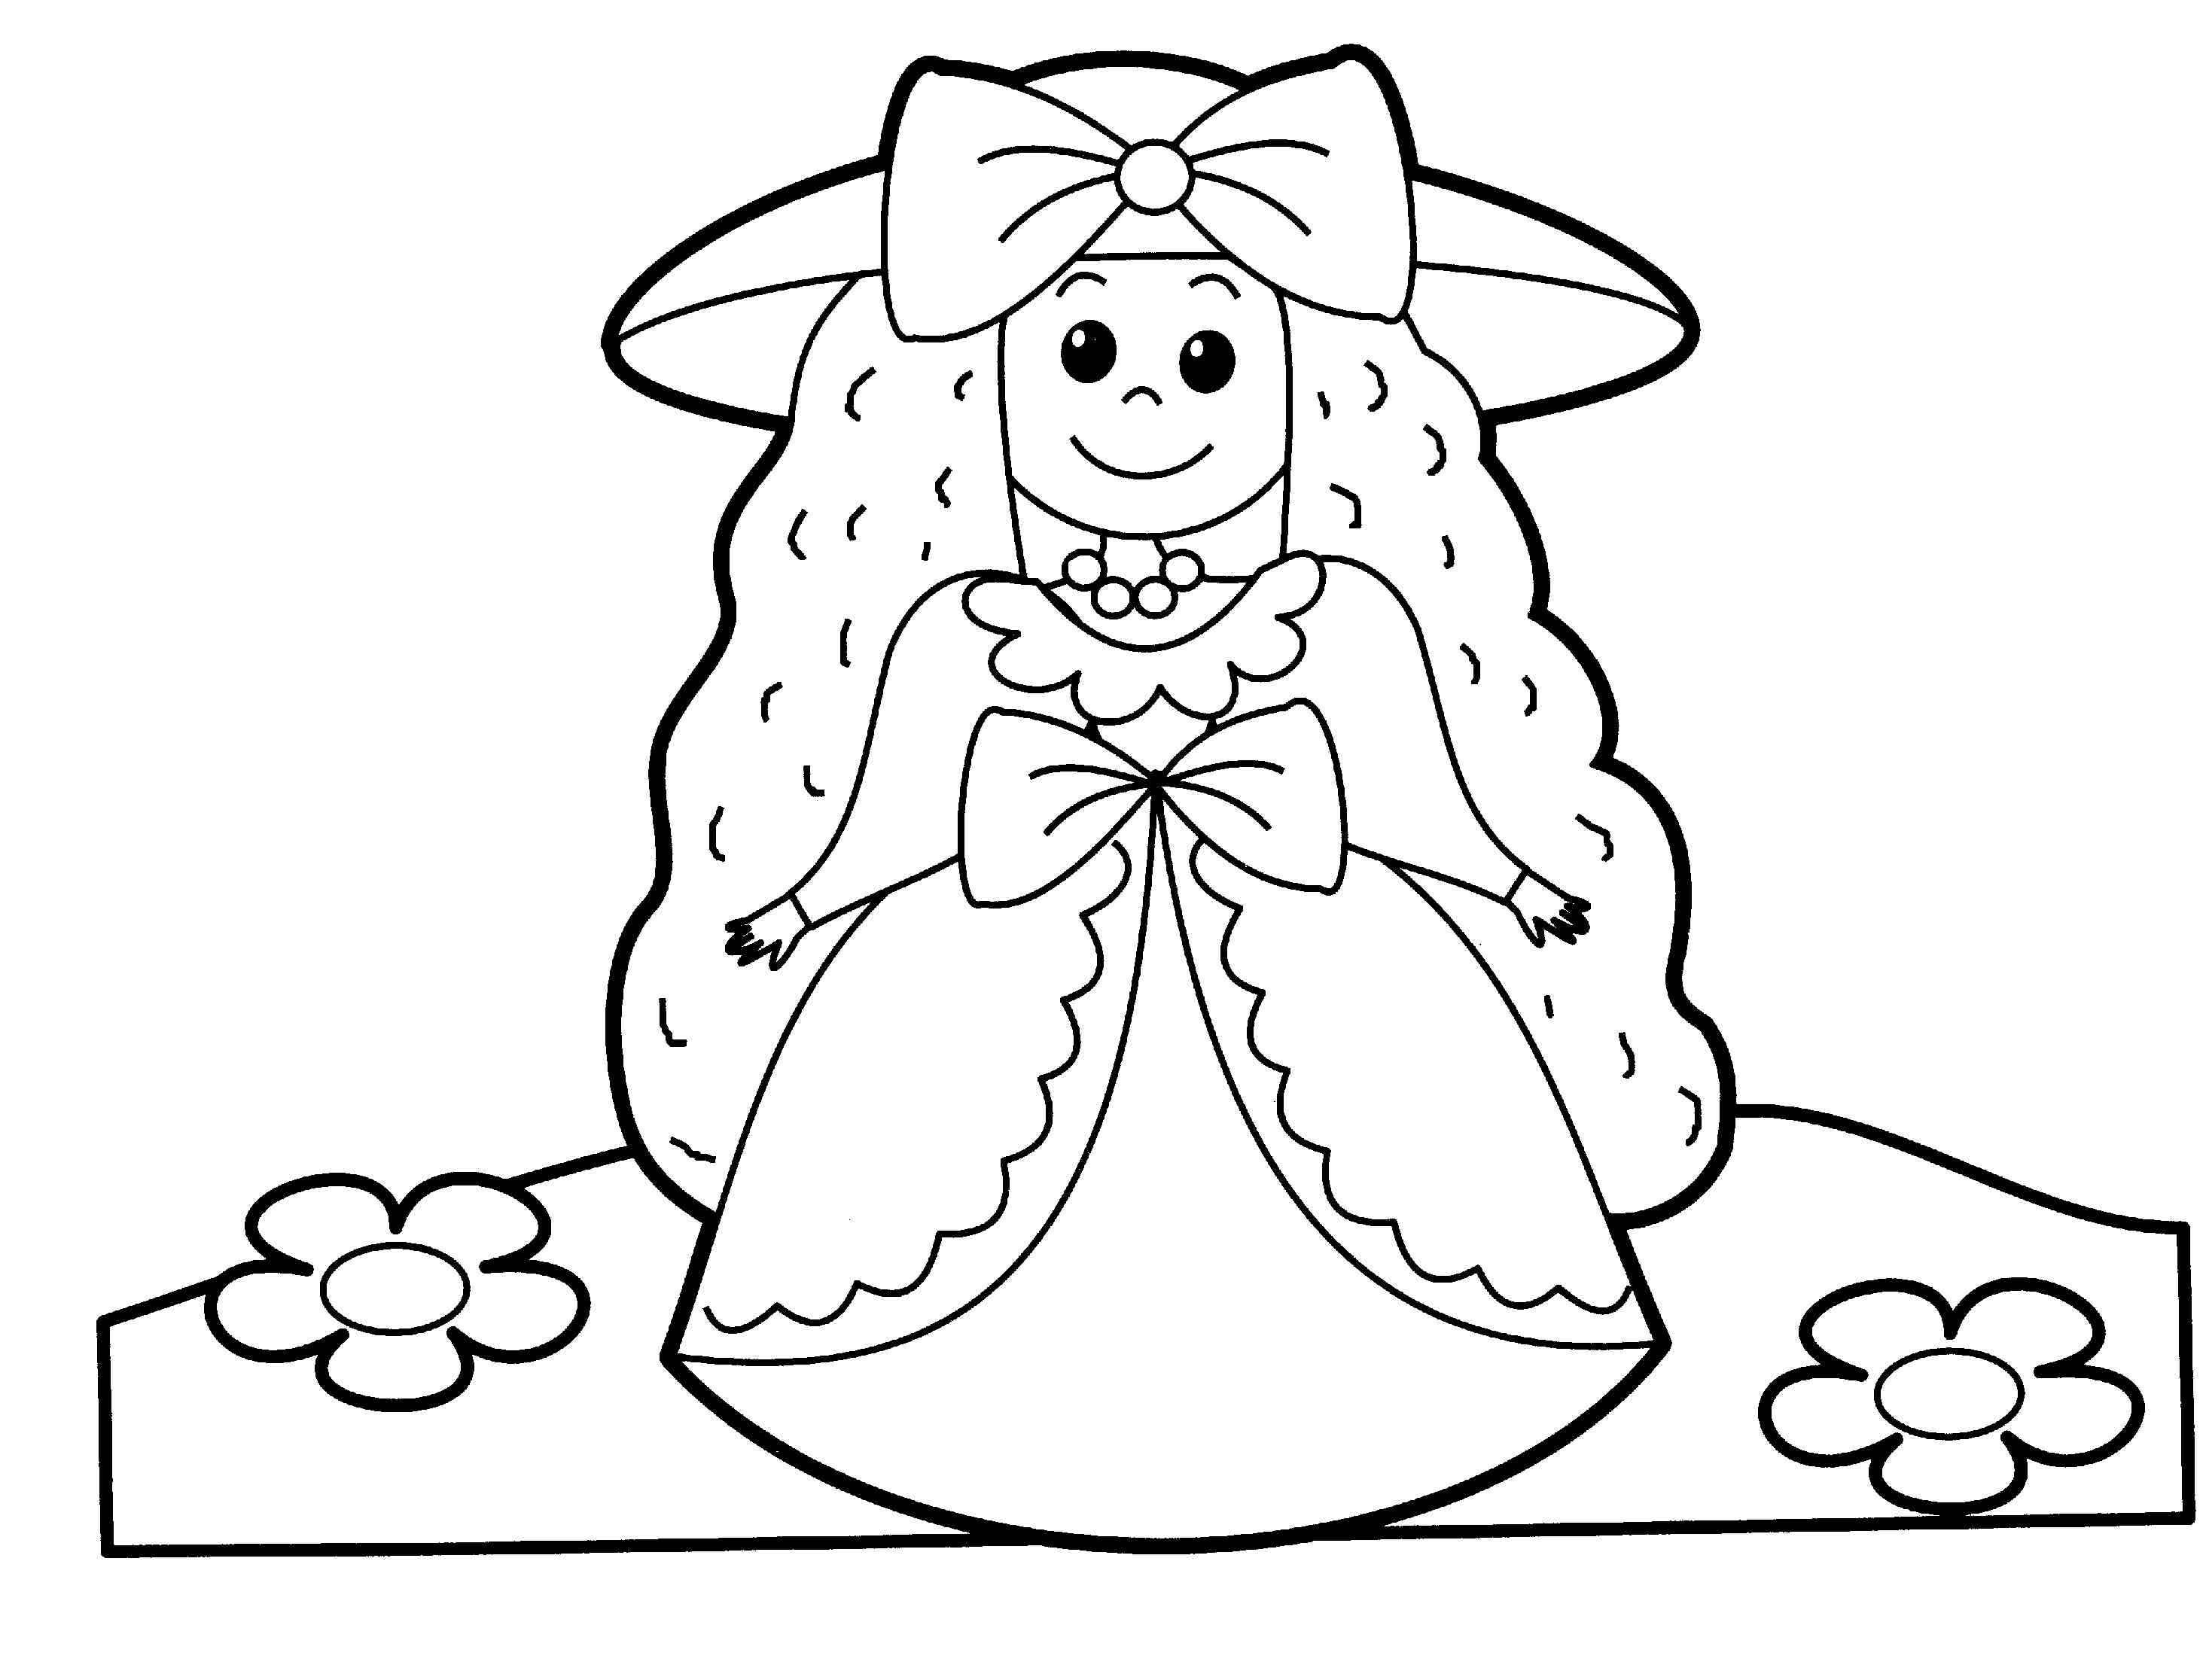 Printable Cute Doll Coloring Book For Me K5 Worksheets Princess Coloring Pages People Coloring Pages Coloring Pages